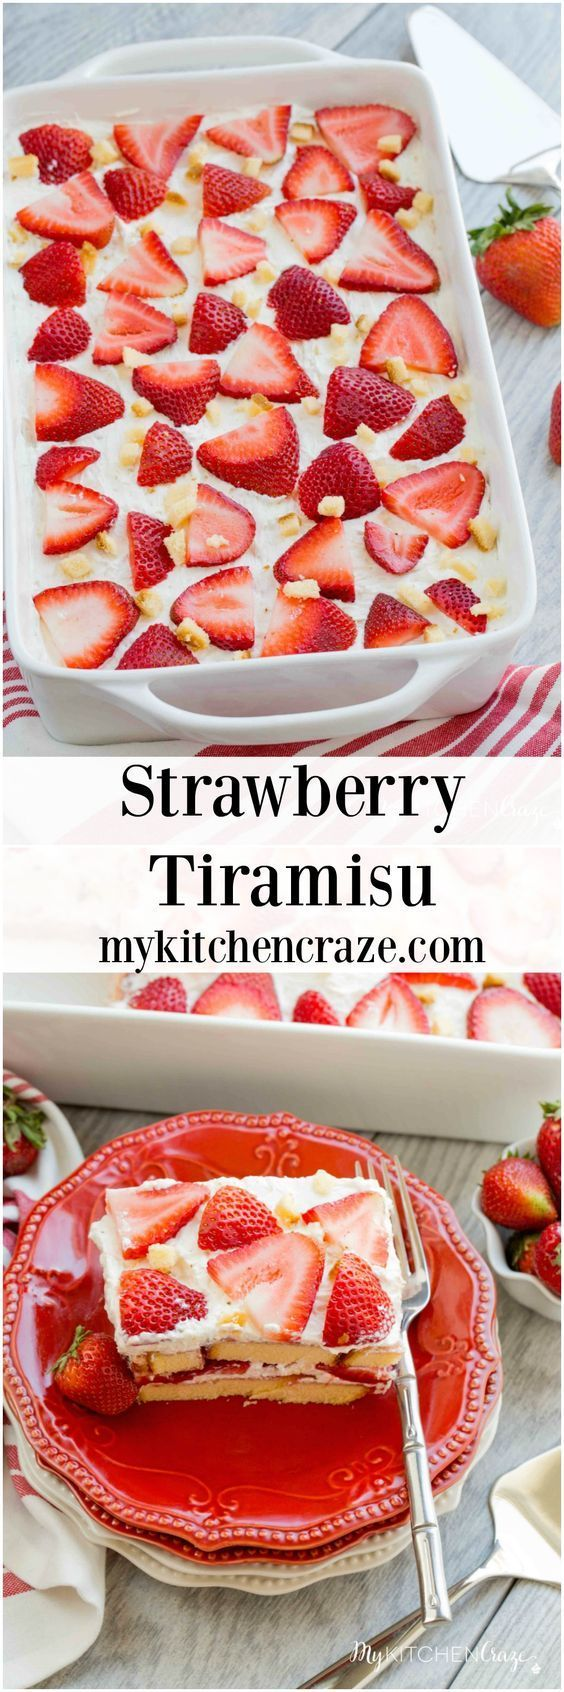 Strawberry Tiramisu ~ http://mykitchencraze.com ~ Enjoy this delicious and fun twist on tiramisu! Loaded with strawberries, pound cake, mascarpone cheese and cool whip. This is one dessert you won't be able to pass up! #MomsDayTreats #ad @Sara Lee Desserts @Cool Whip